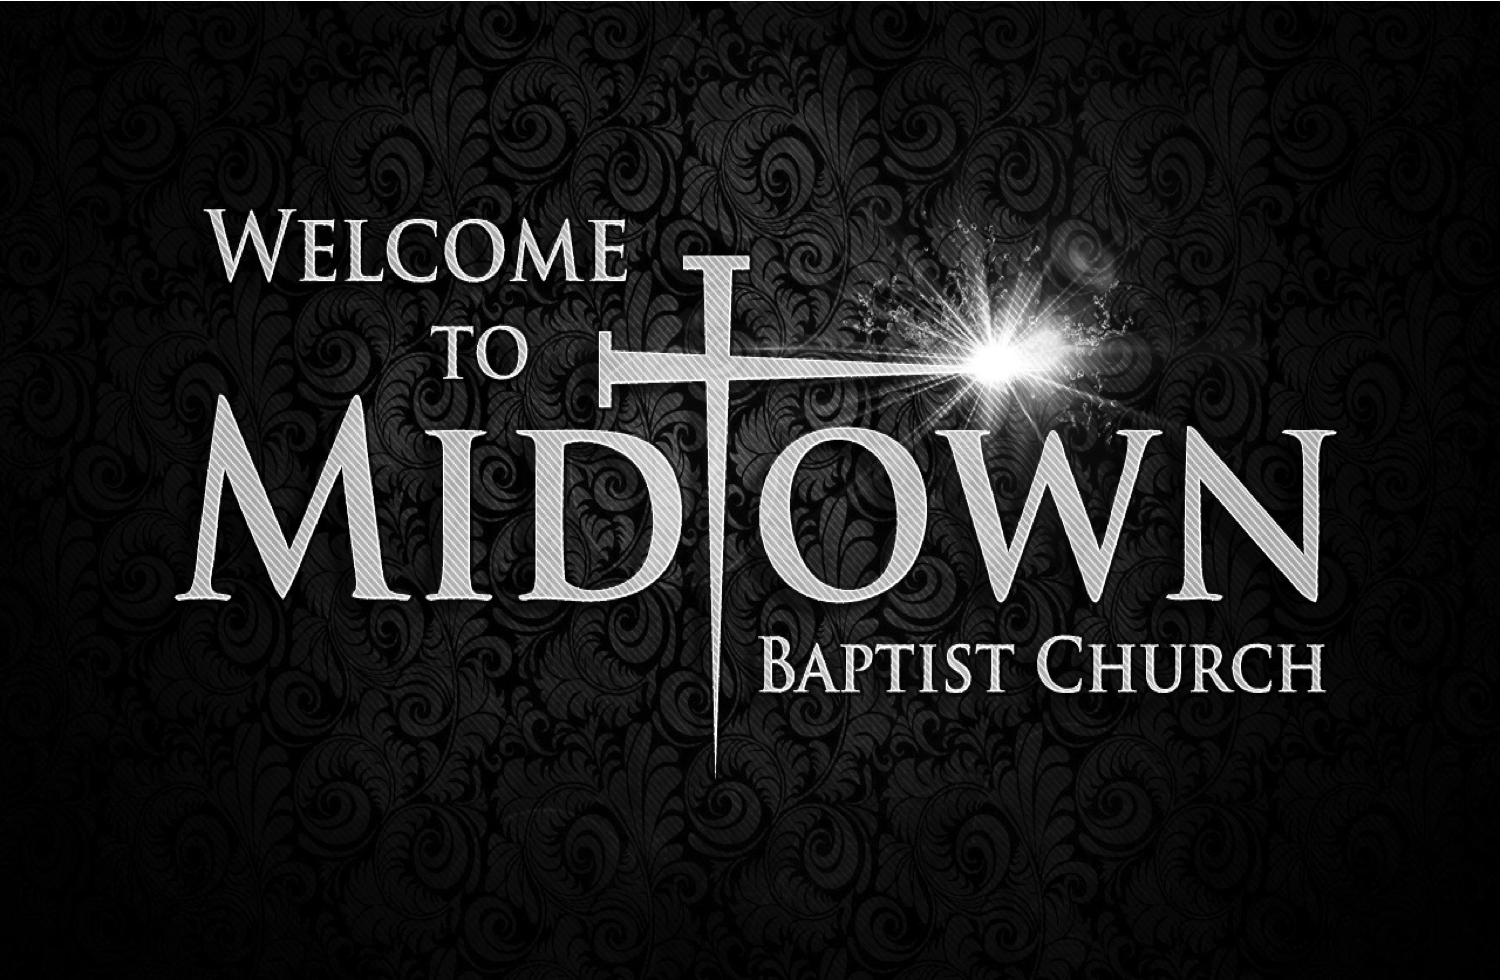 Midtown Baptist Church